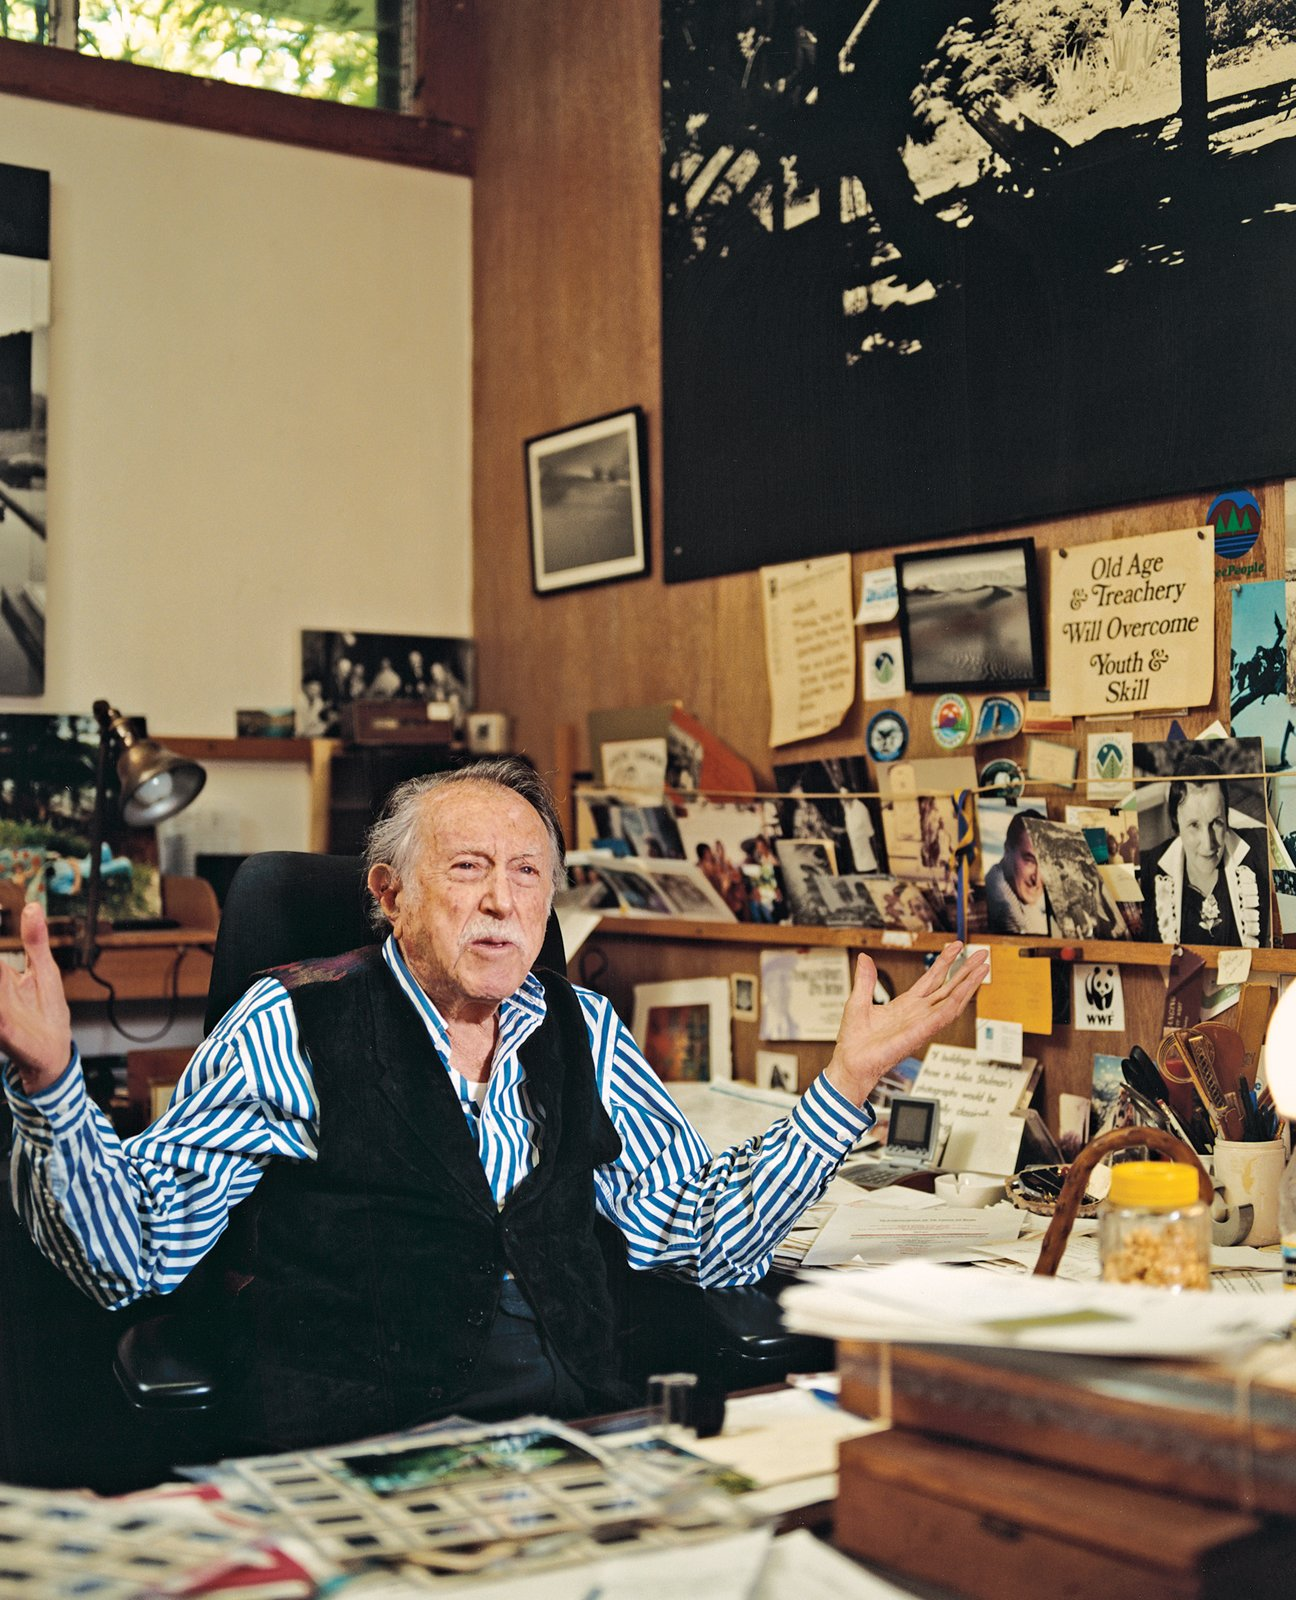 """""""A wonderful mess"""" is how Shulman describes his desk. Interspersed among the family snapshots, mementos, and tchotchkes are several enlarged quotations, including one from Art News: """"If buildings were people, those in Julius Shulman's photographs would be Grace Kelly: classically elegant, intriguingly remote.""""  Photo 1 of 4 in True Hollywood Story"""